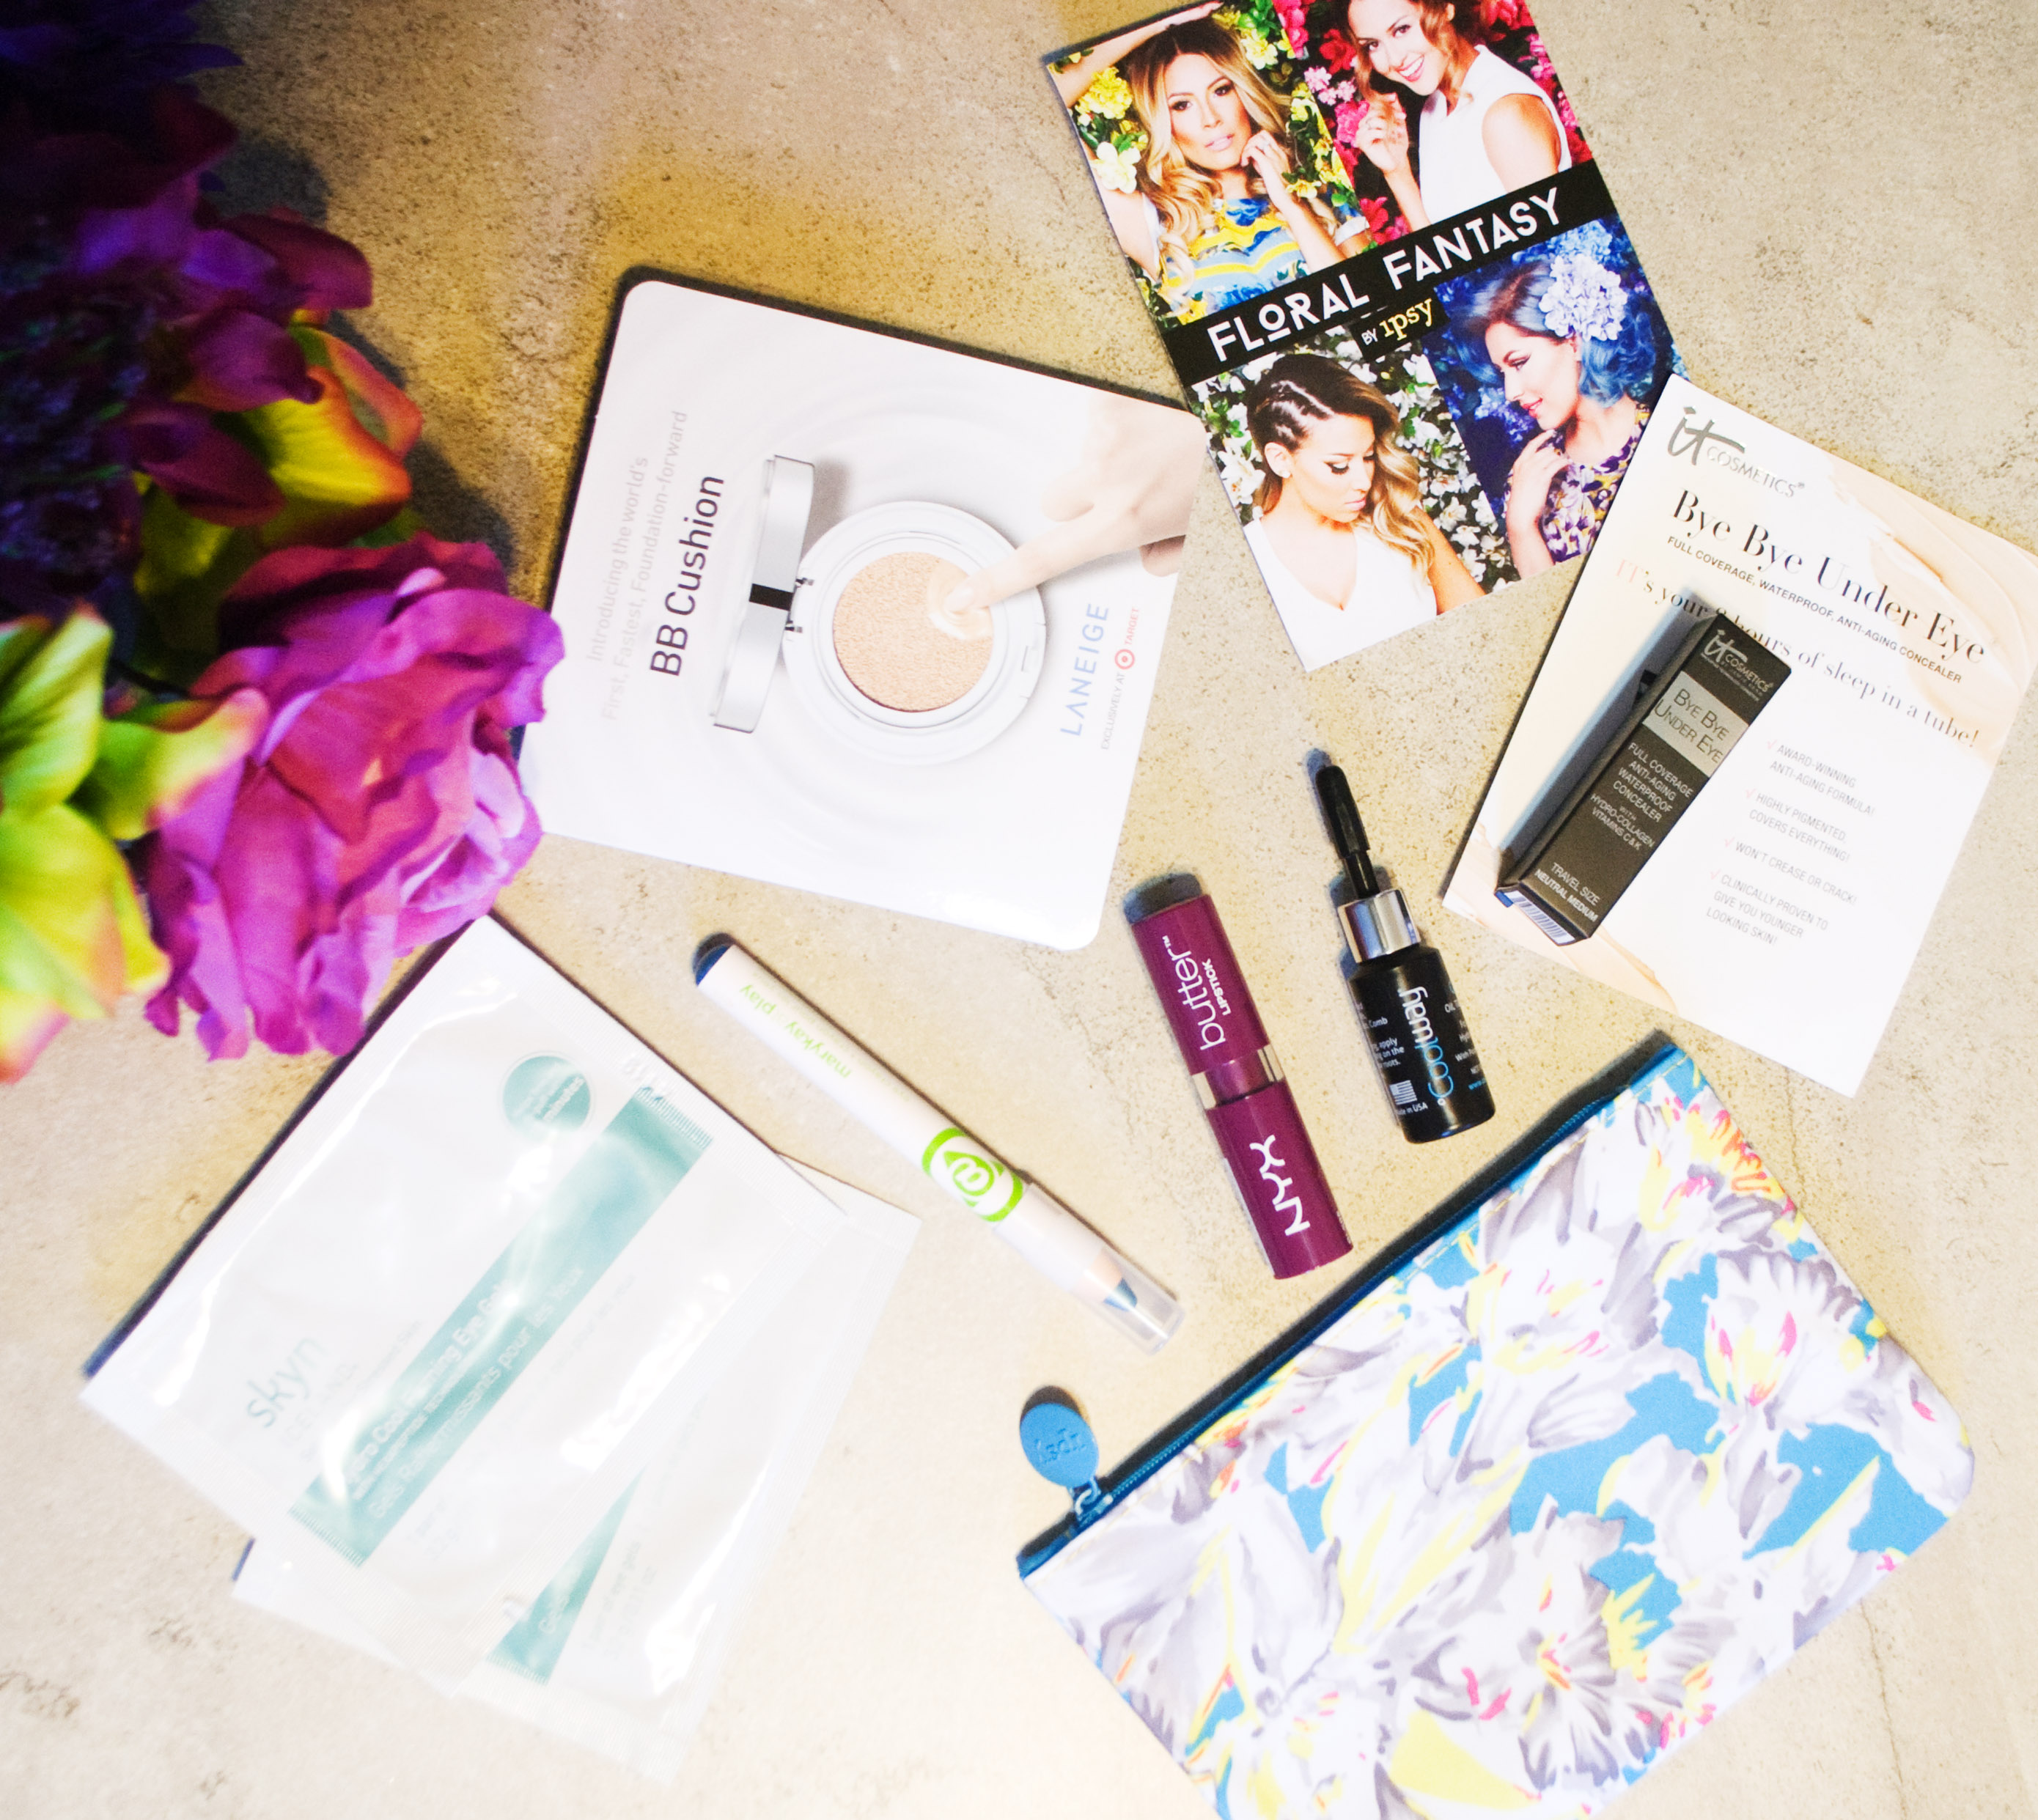 March Ipsy Glam Bag Reveal 2015 and Why I Unsubscribed